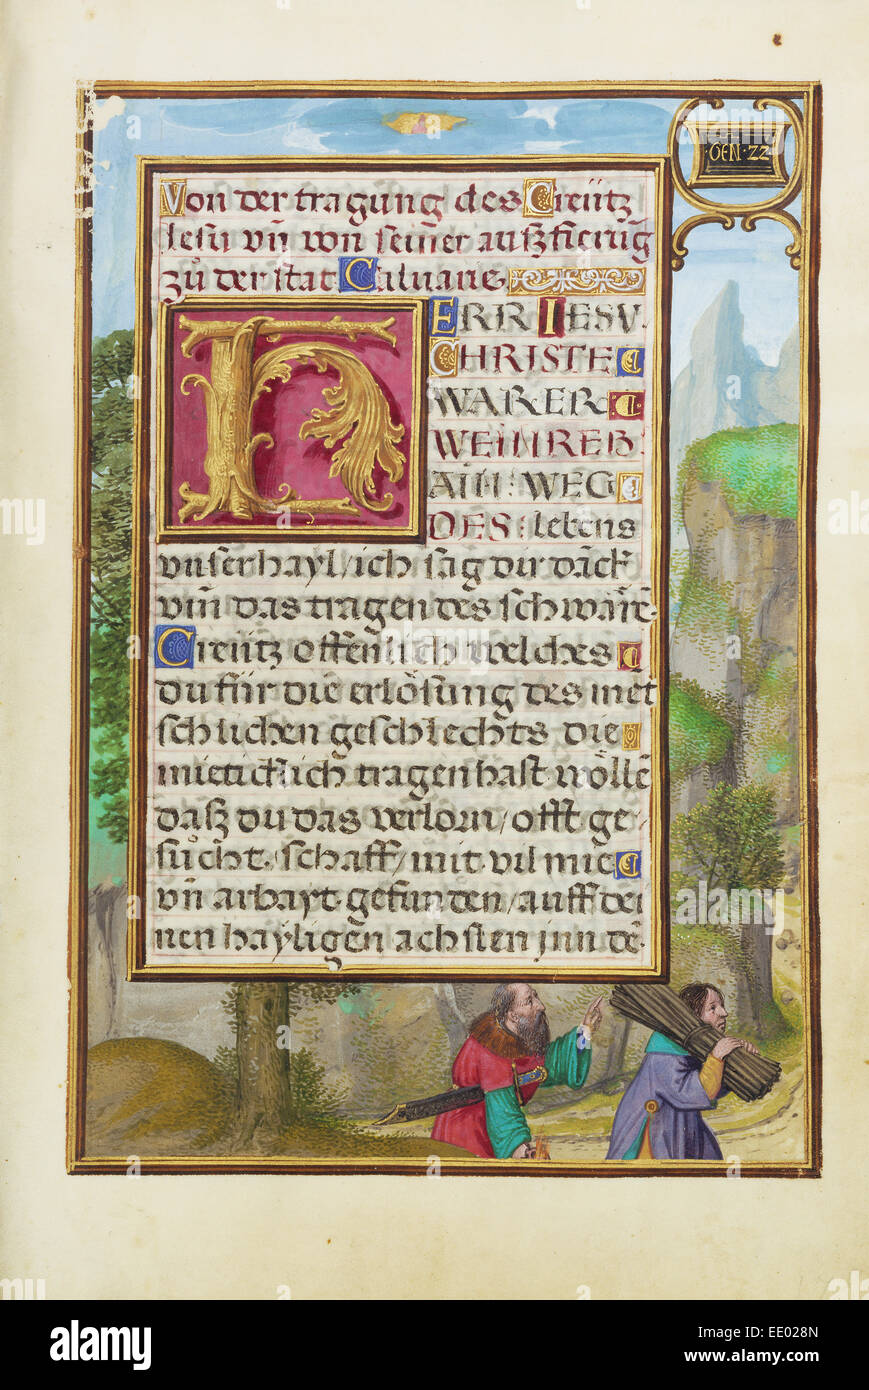 Border with Abraham and Isaac; Simon Bening, Flemish, about 1483 - 1561; Bruges, Belgium, Europe; about 1525 - 1530 - Stock Image